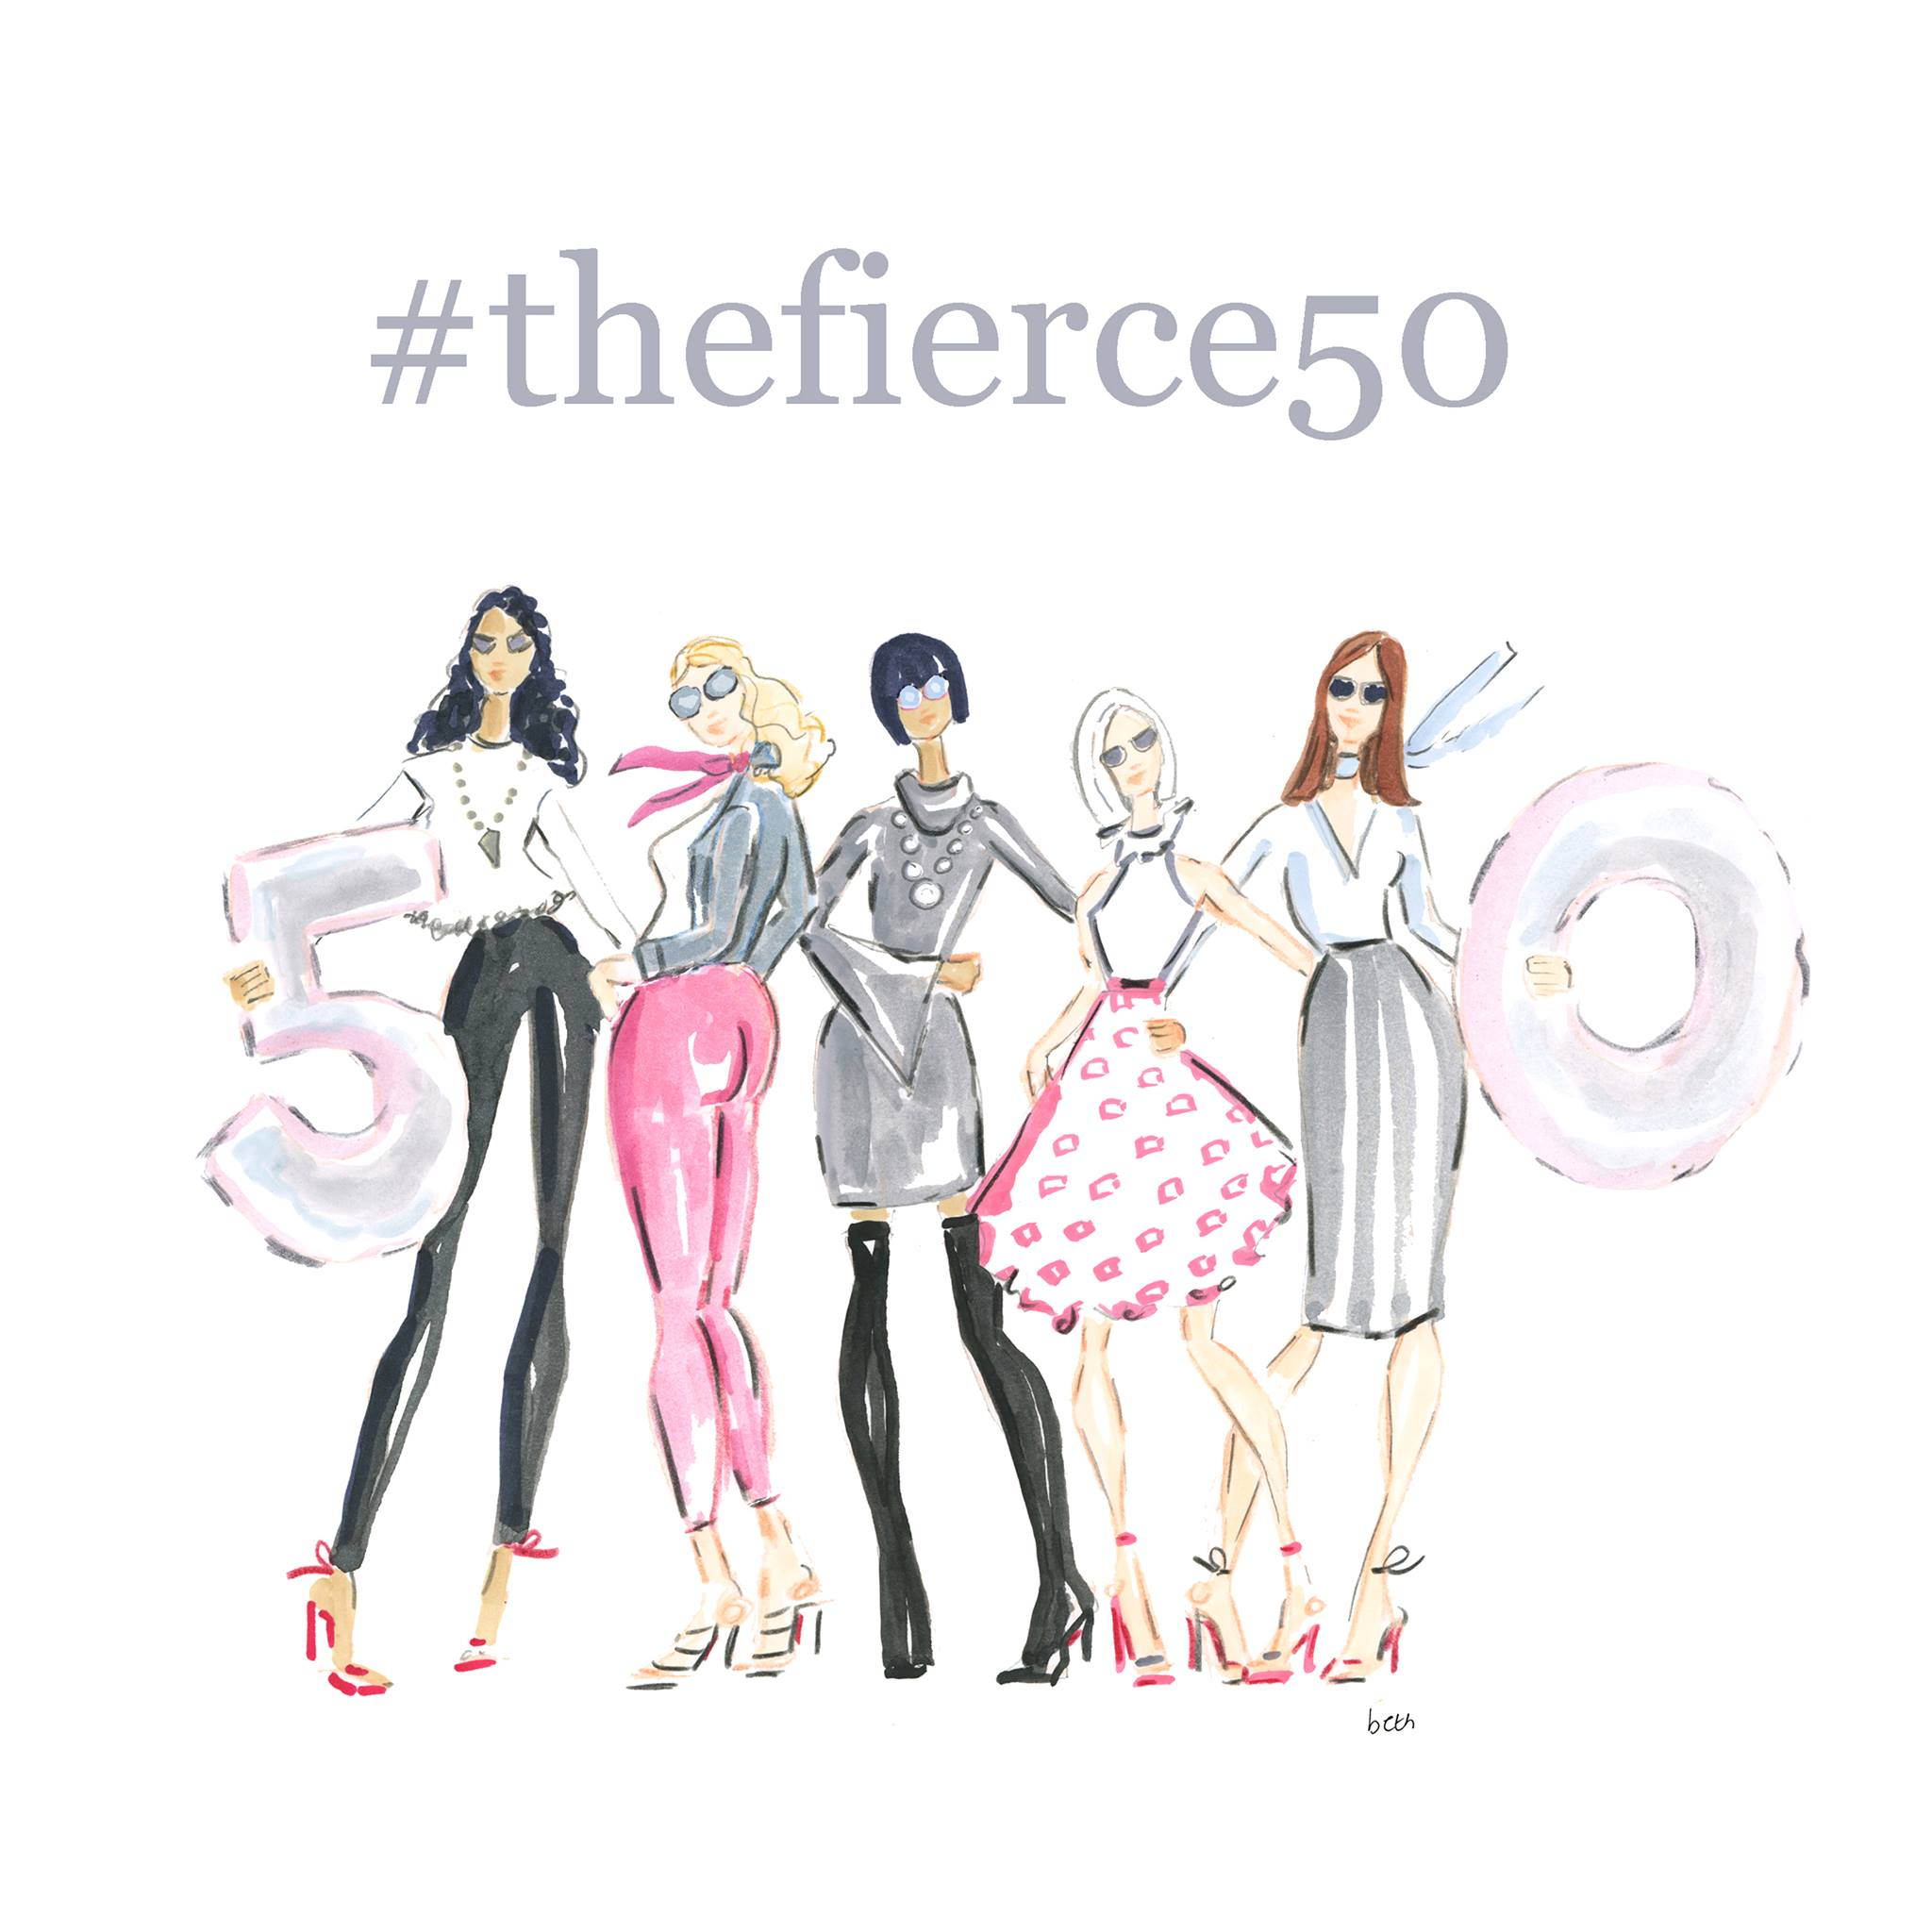 The Fierce 50 Campaign - Ana Bogusky & Anita Morris